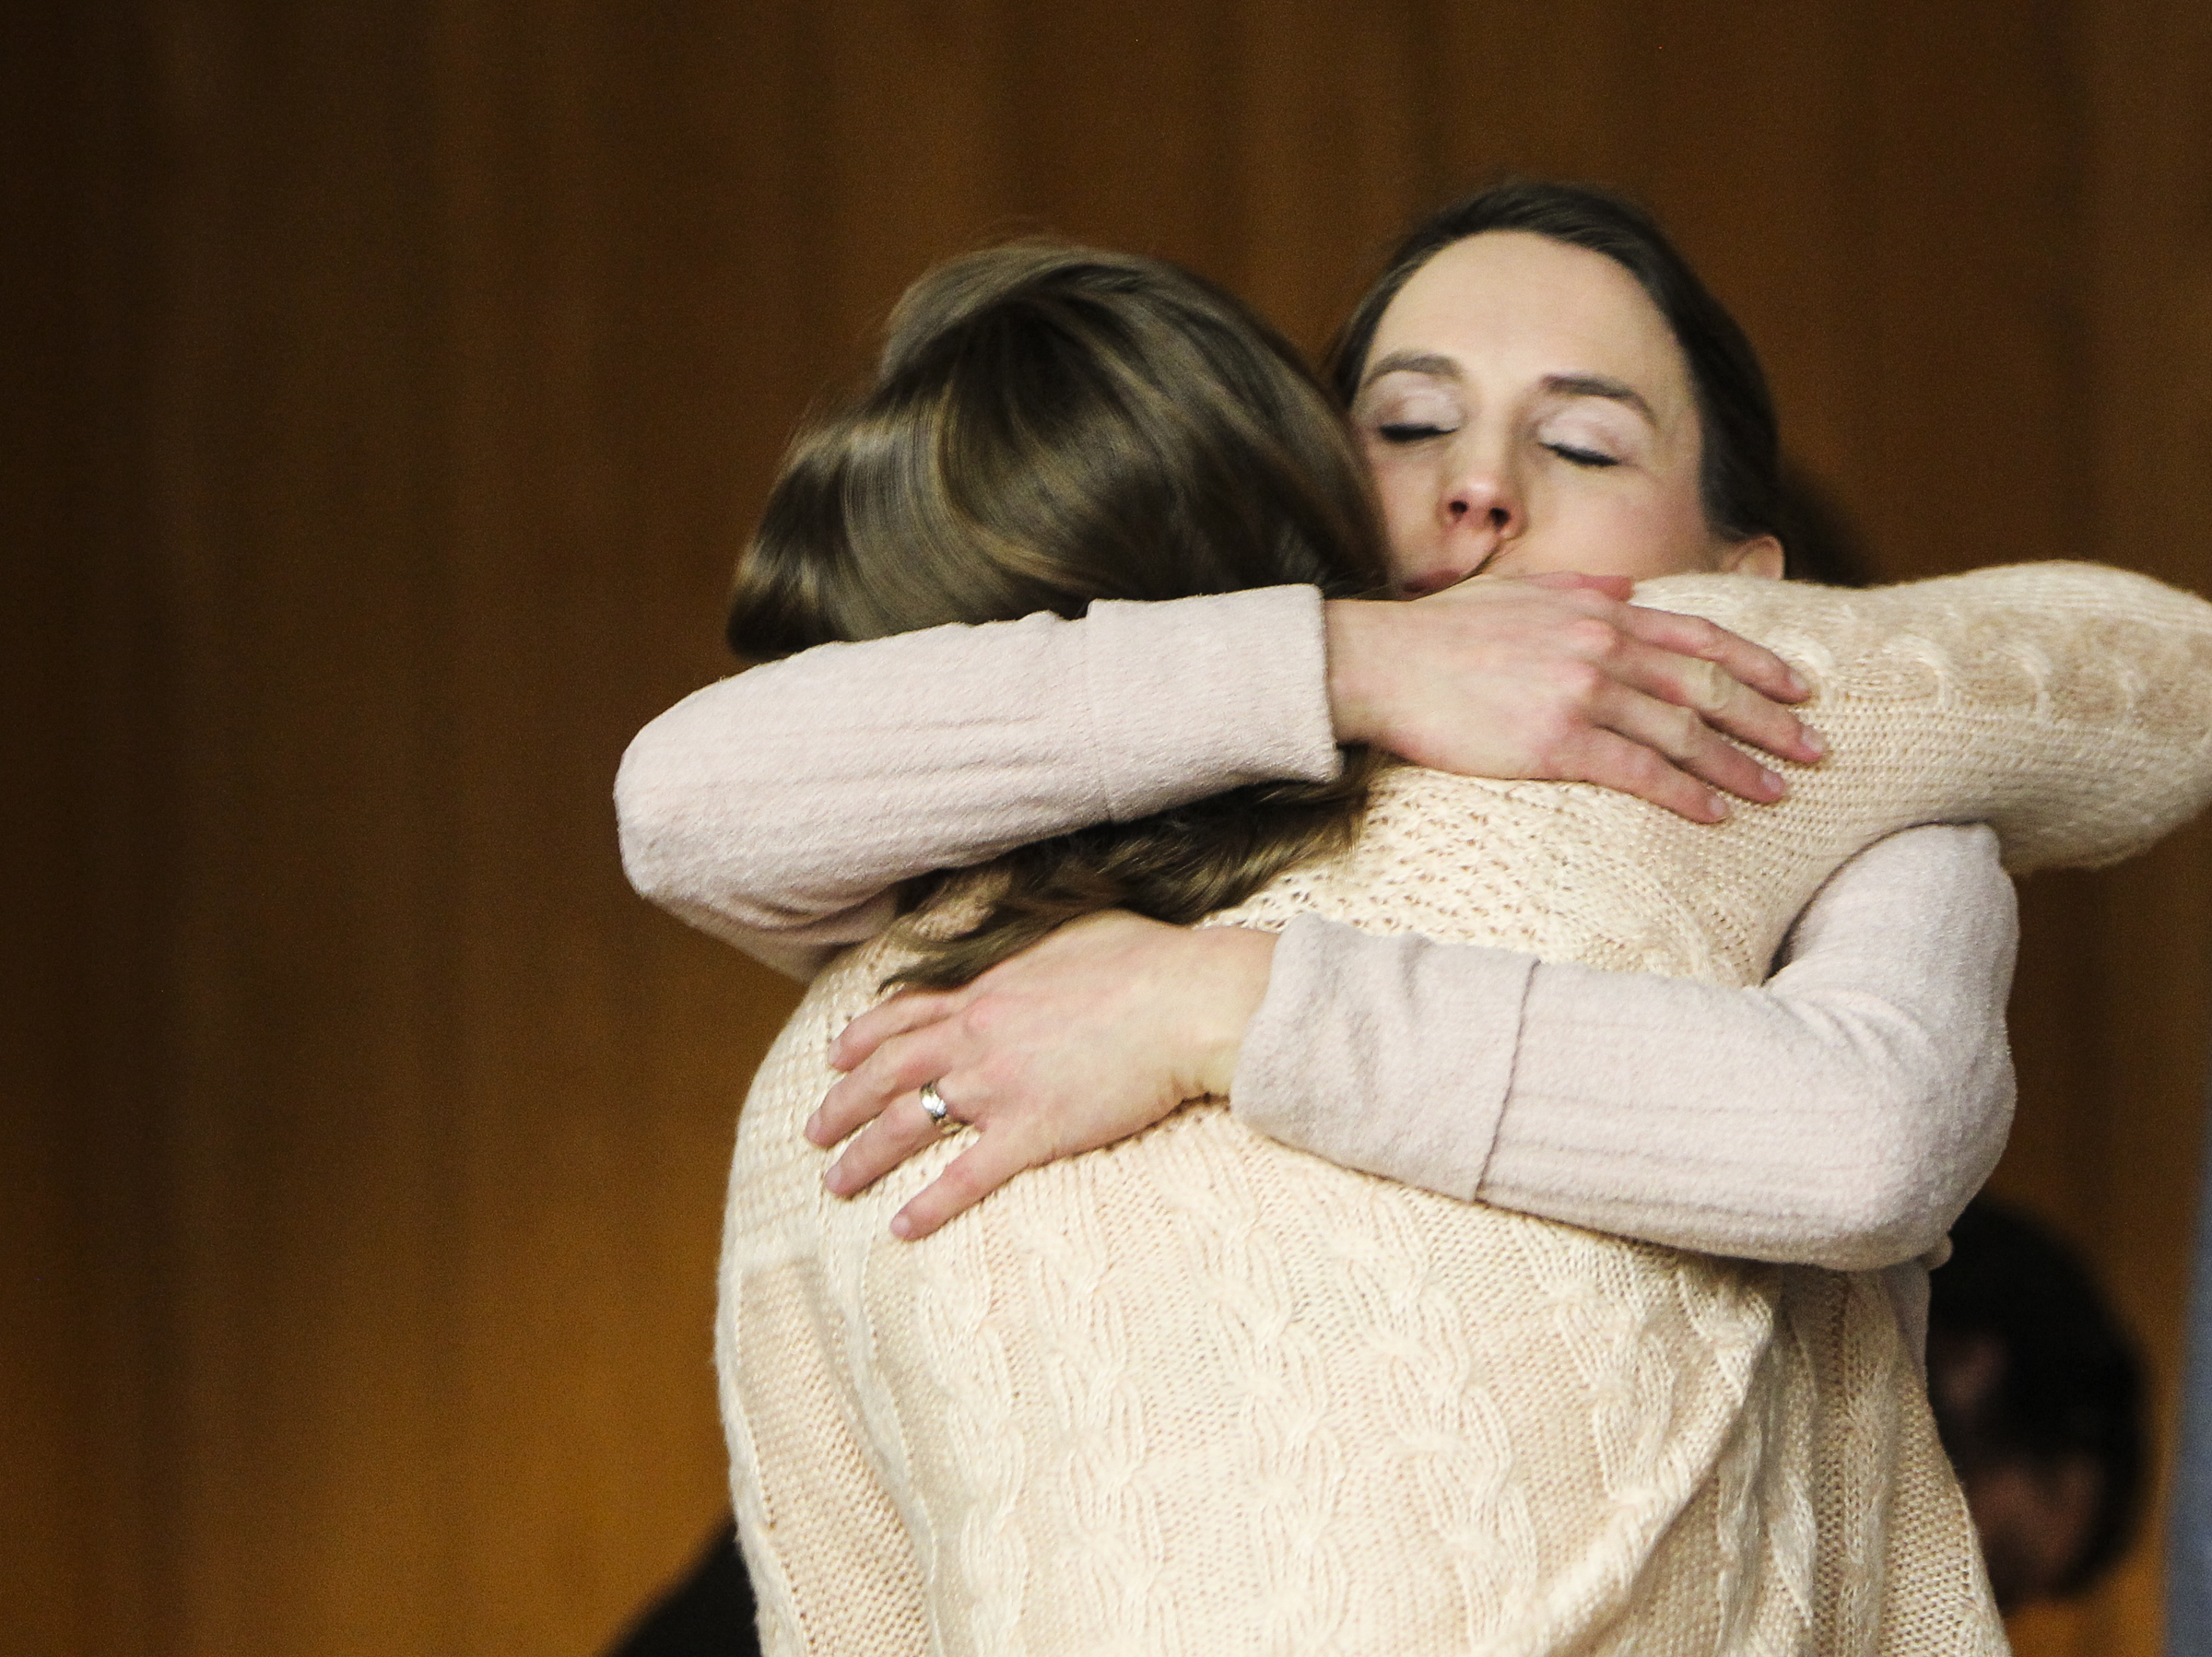 Rachael Denhollander hugs people Monday, Feb. 5, 2018, after the third and final day of sentencing of Larry Nassar in Eaton County Court in Charlotte, Mich., where Nassar was sentenced to between 40 and 125 years in prison on three counts of sexual assault.  (Matthew Dae Smith/Lansing State Journal via AP)